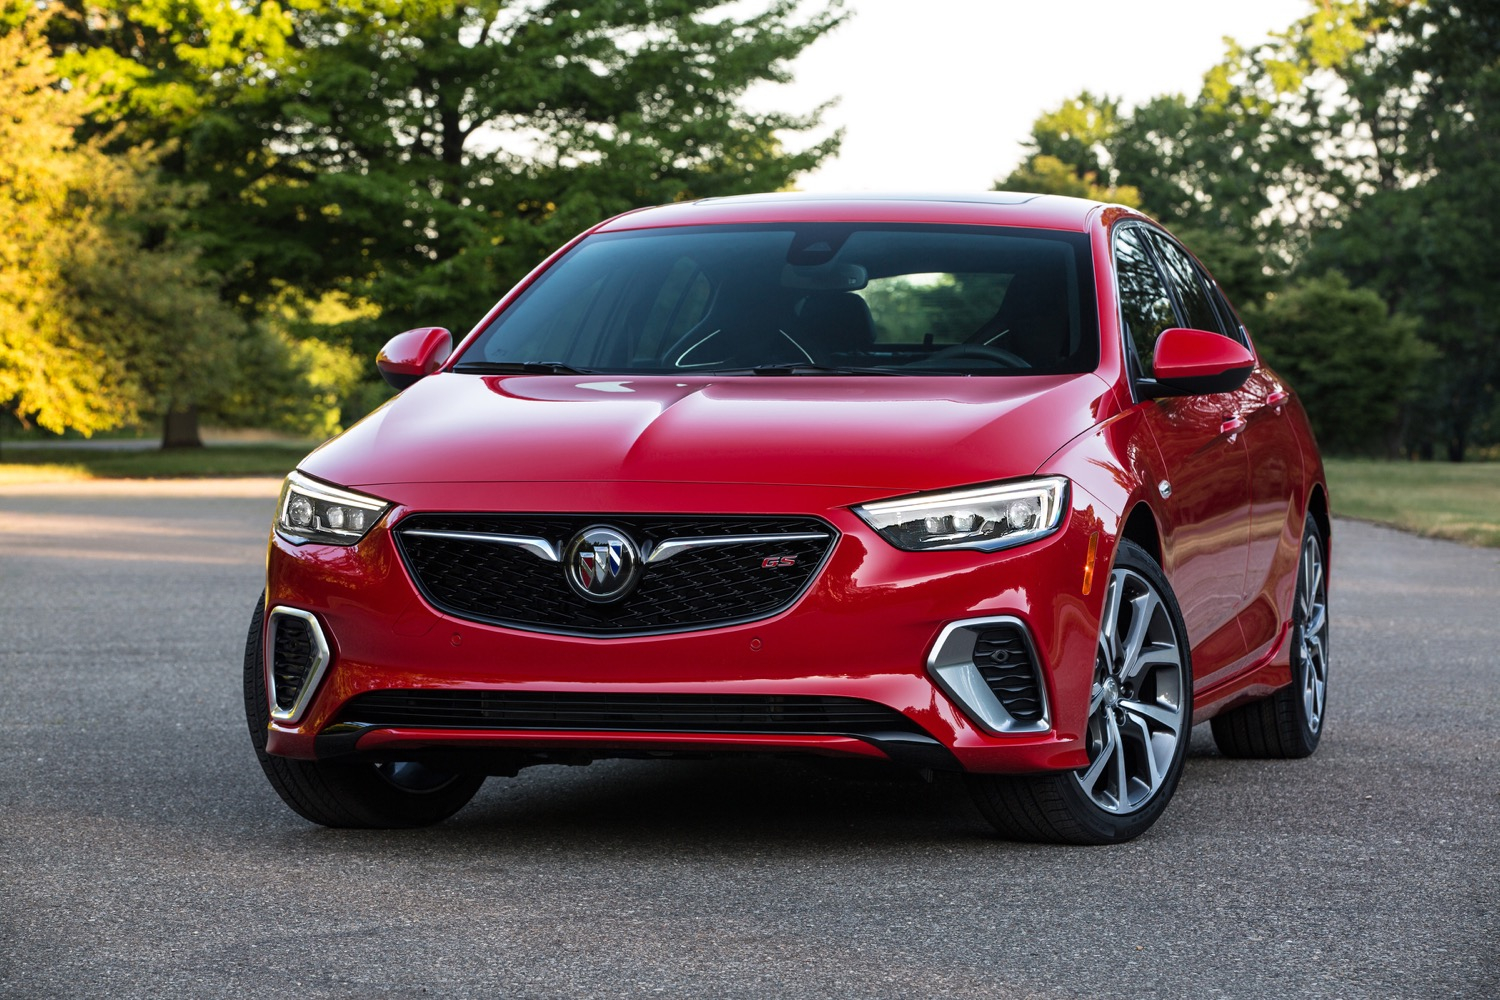 We Have Some Beef With This 2018 Buick Regal Gs Review | Gm New 2021 Buick Regal Specs, Price, 0-60